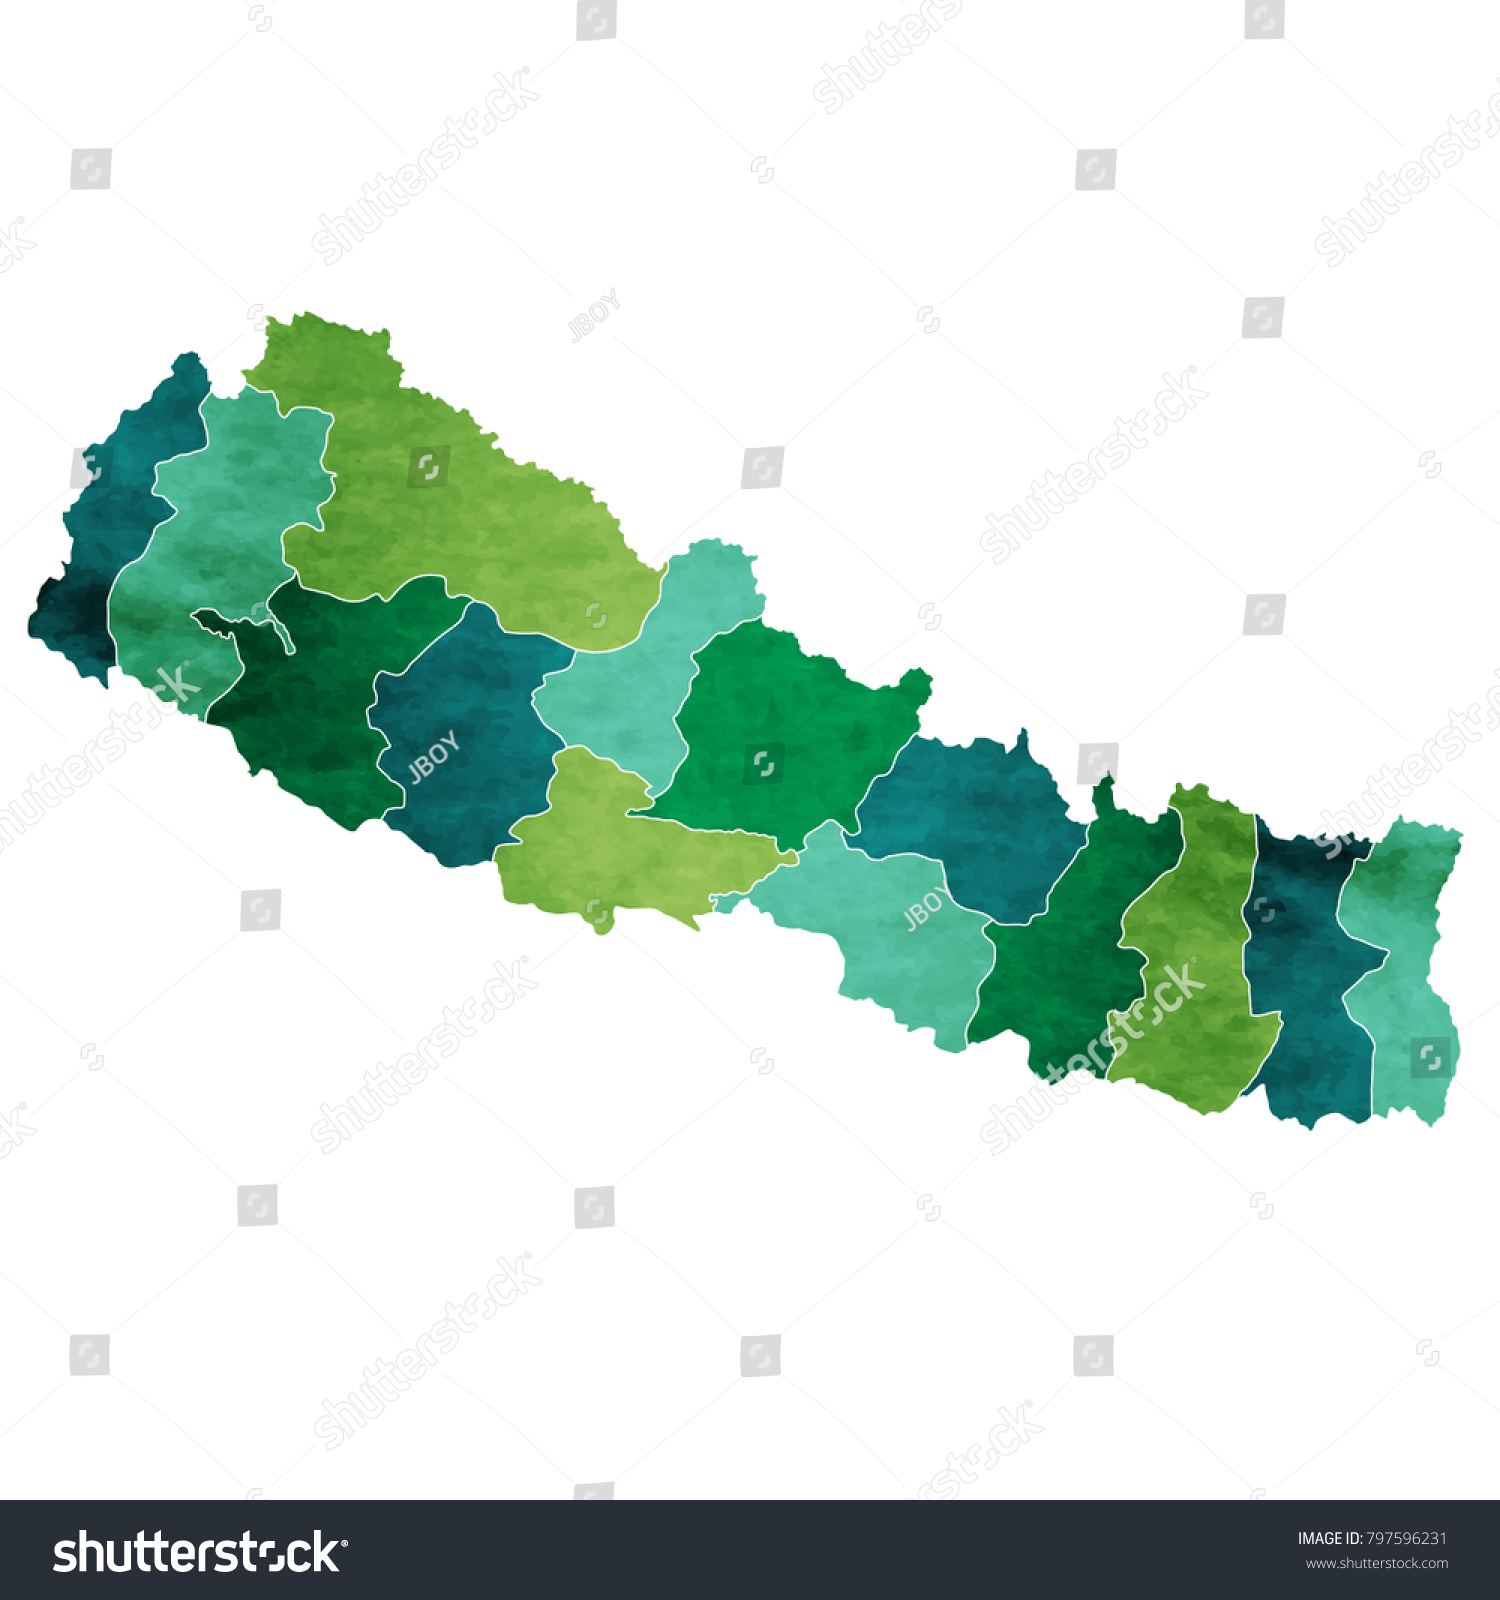 Nepal World Map Country Icon Stock Vector 797596231 - Shutterstock